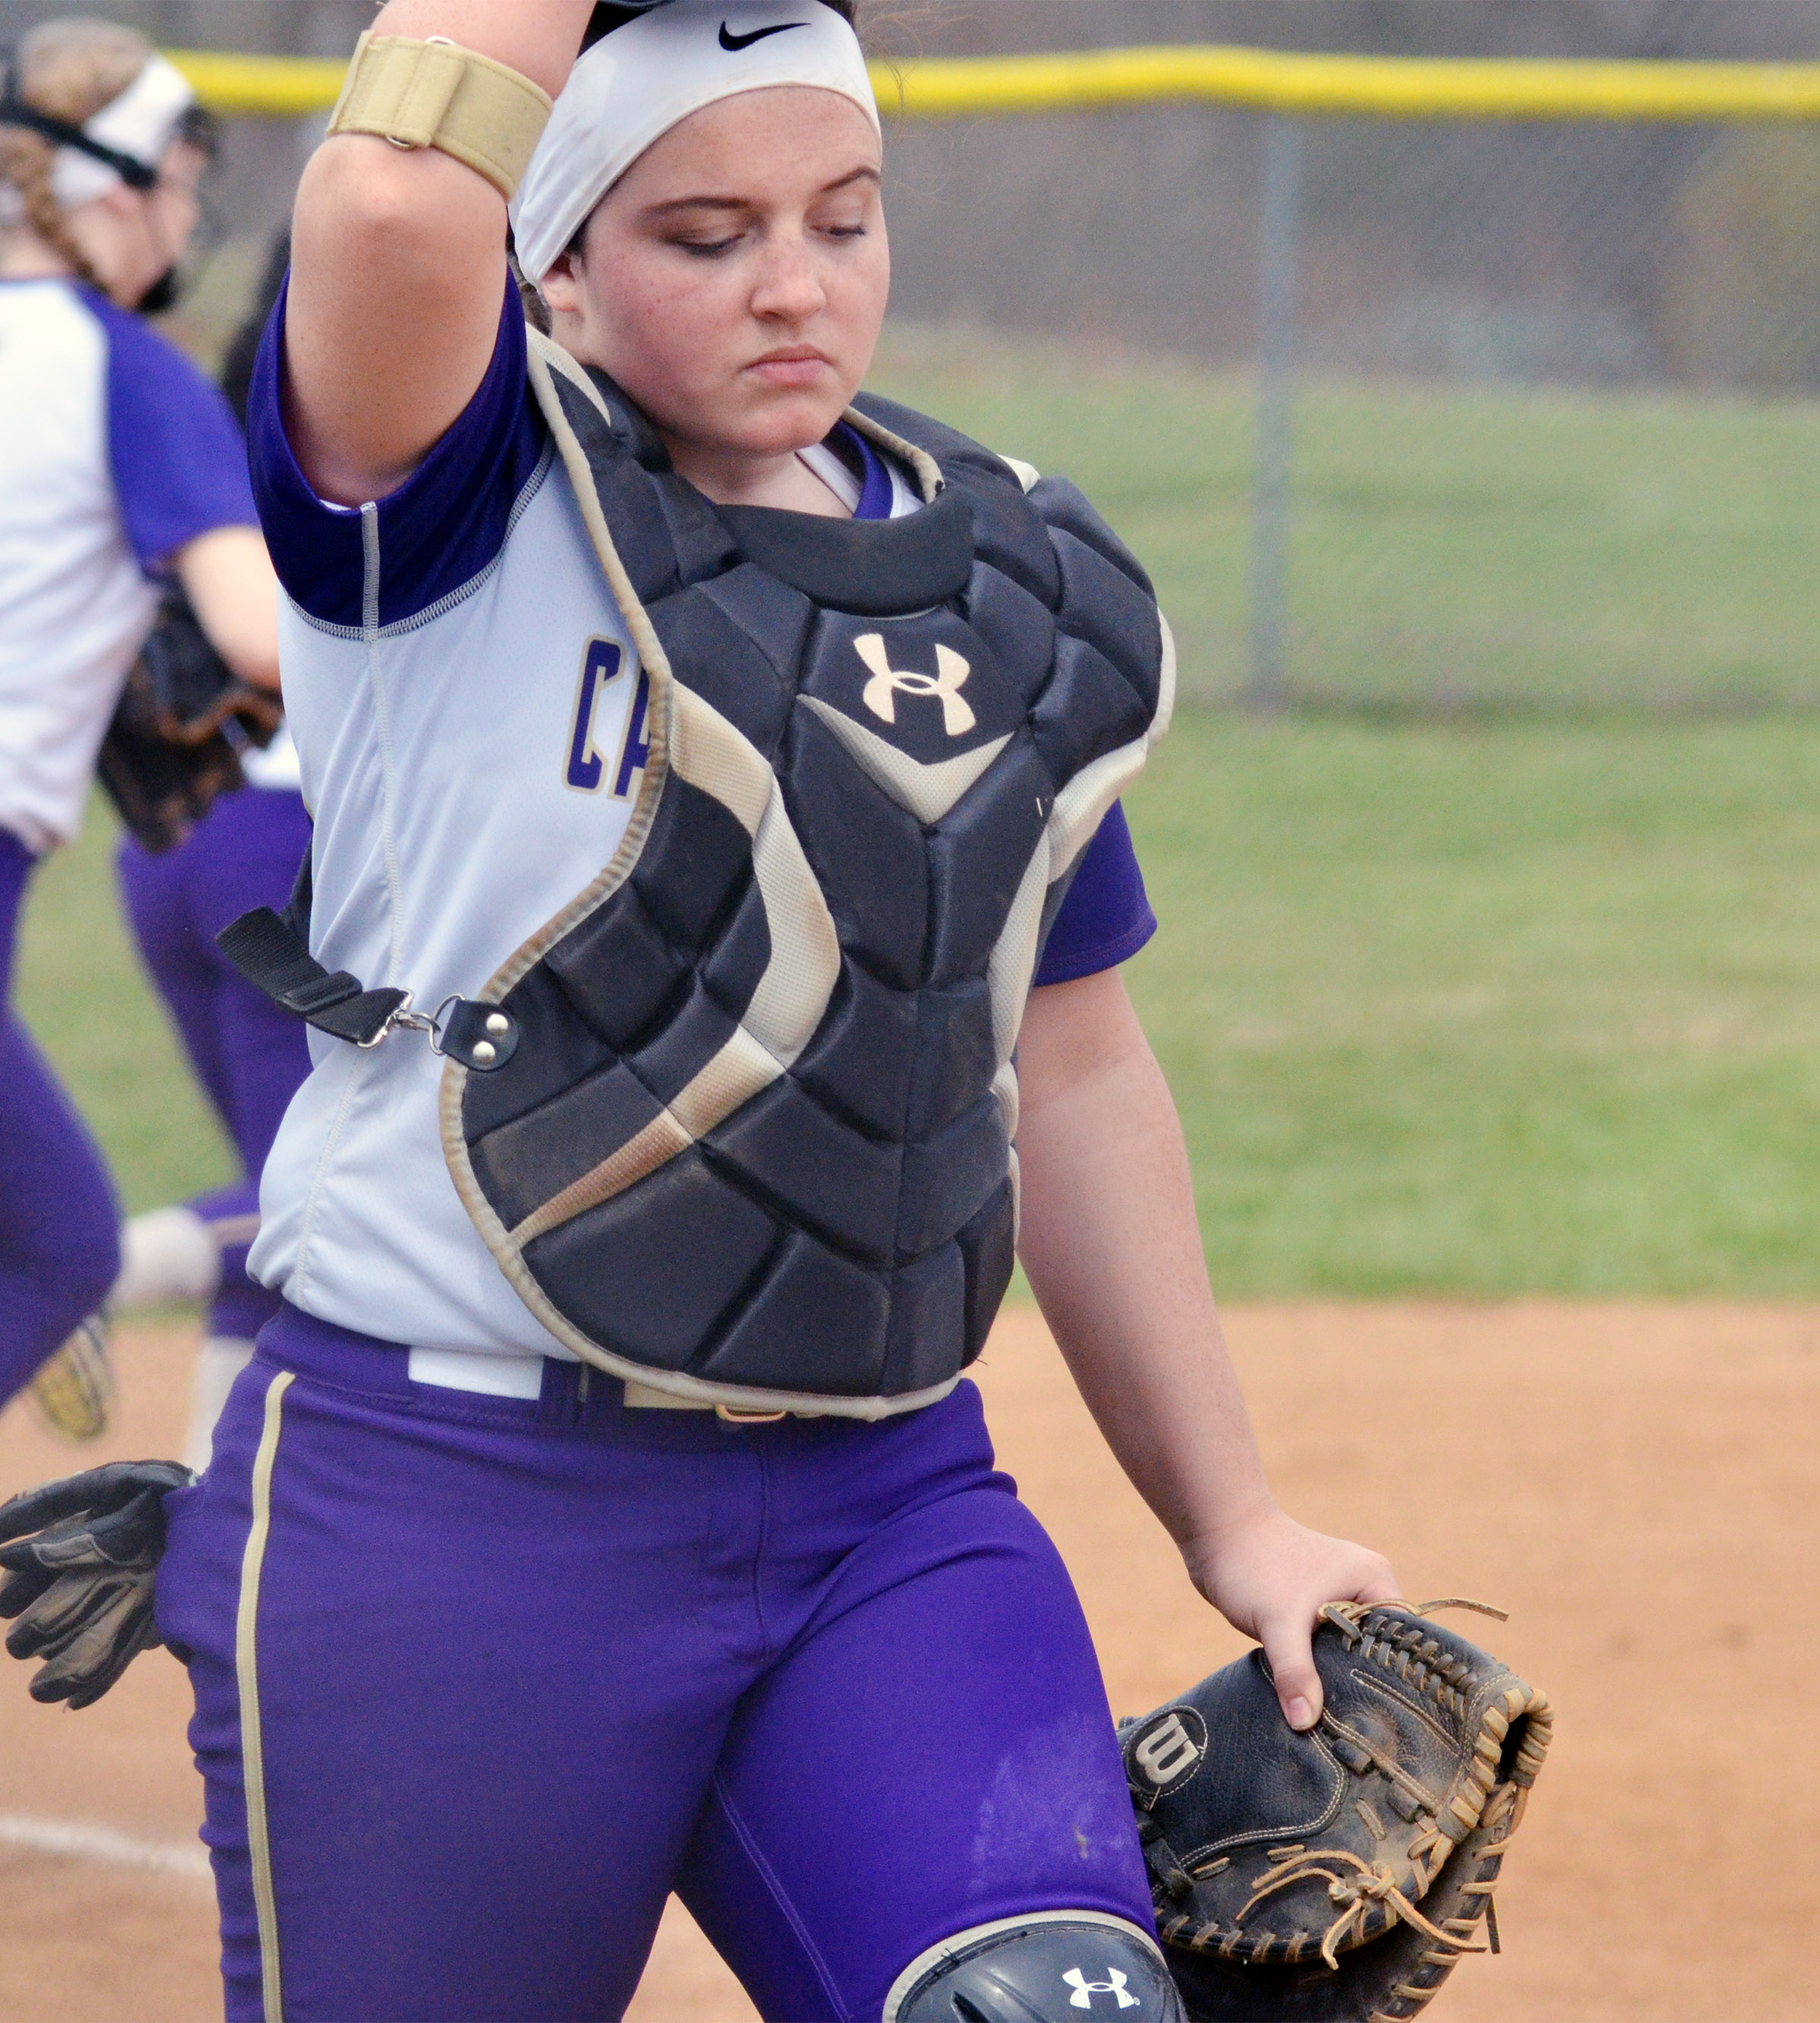 CHS junior Caitlin Bright walks to the plate.